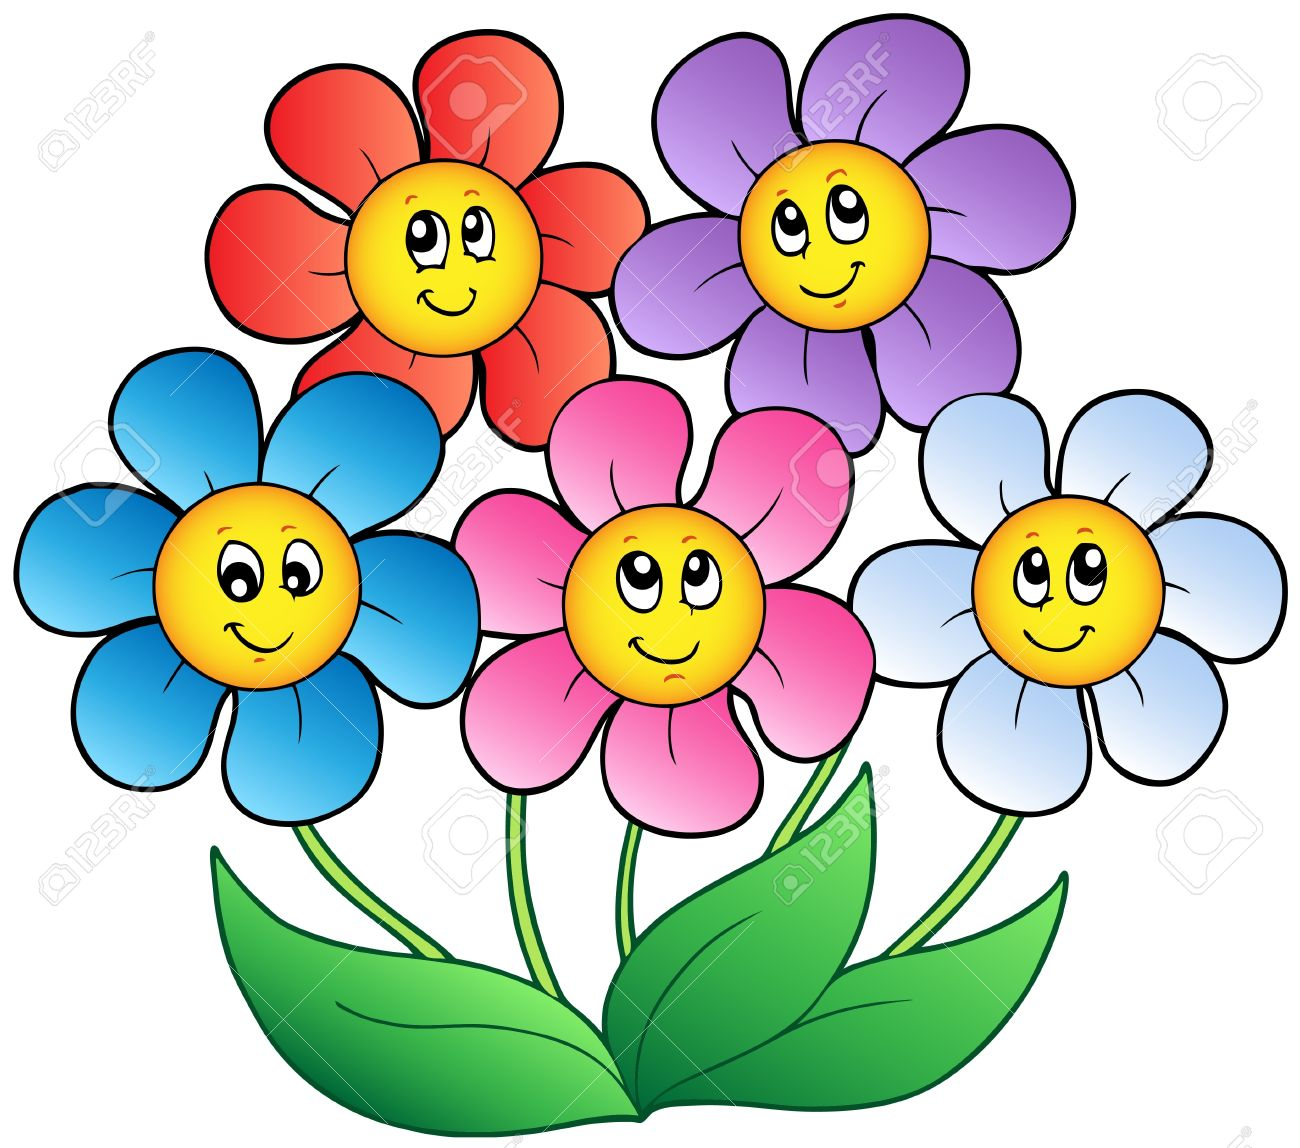 five cartoon flowers royalty free cliparts vectors and stock